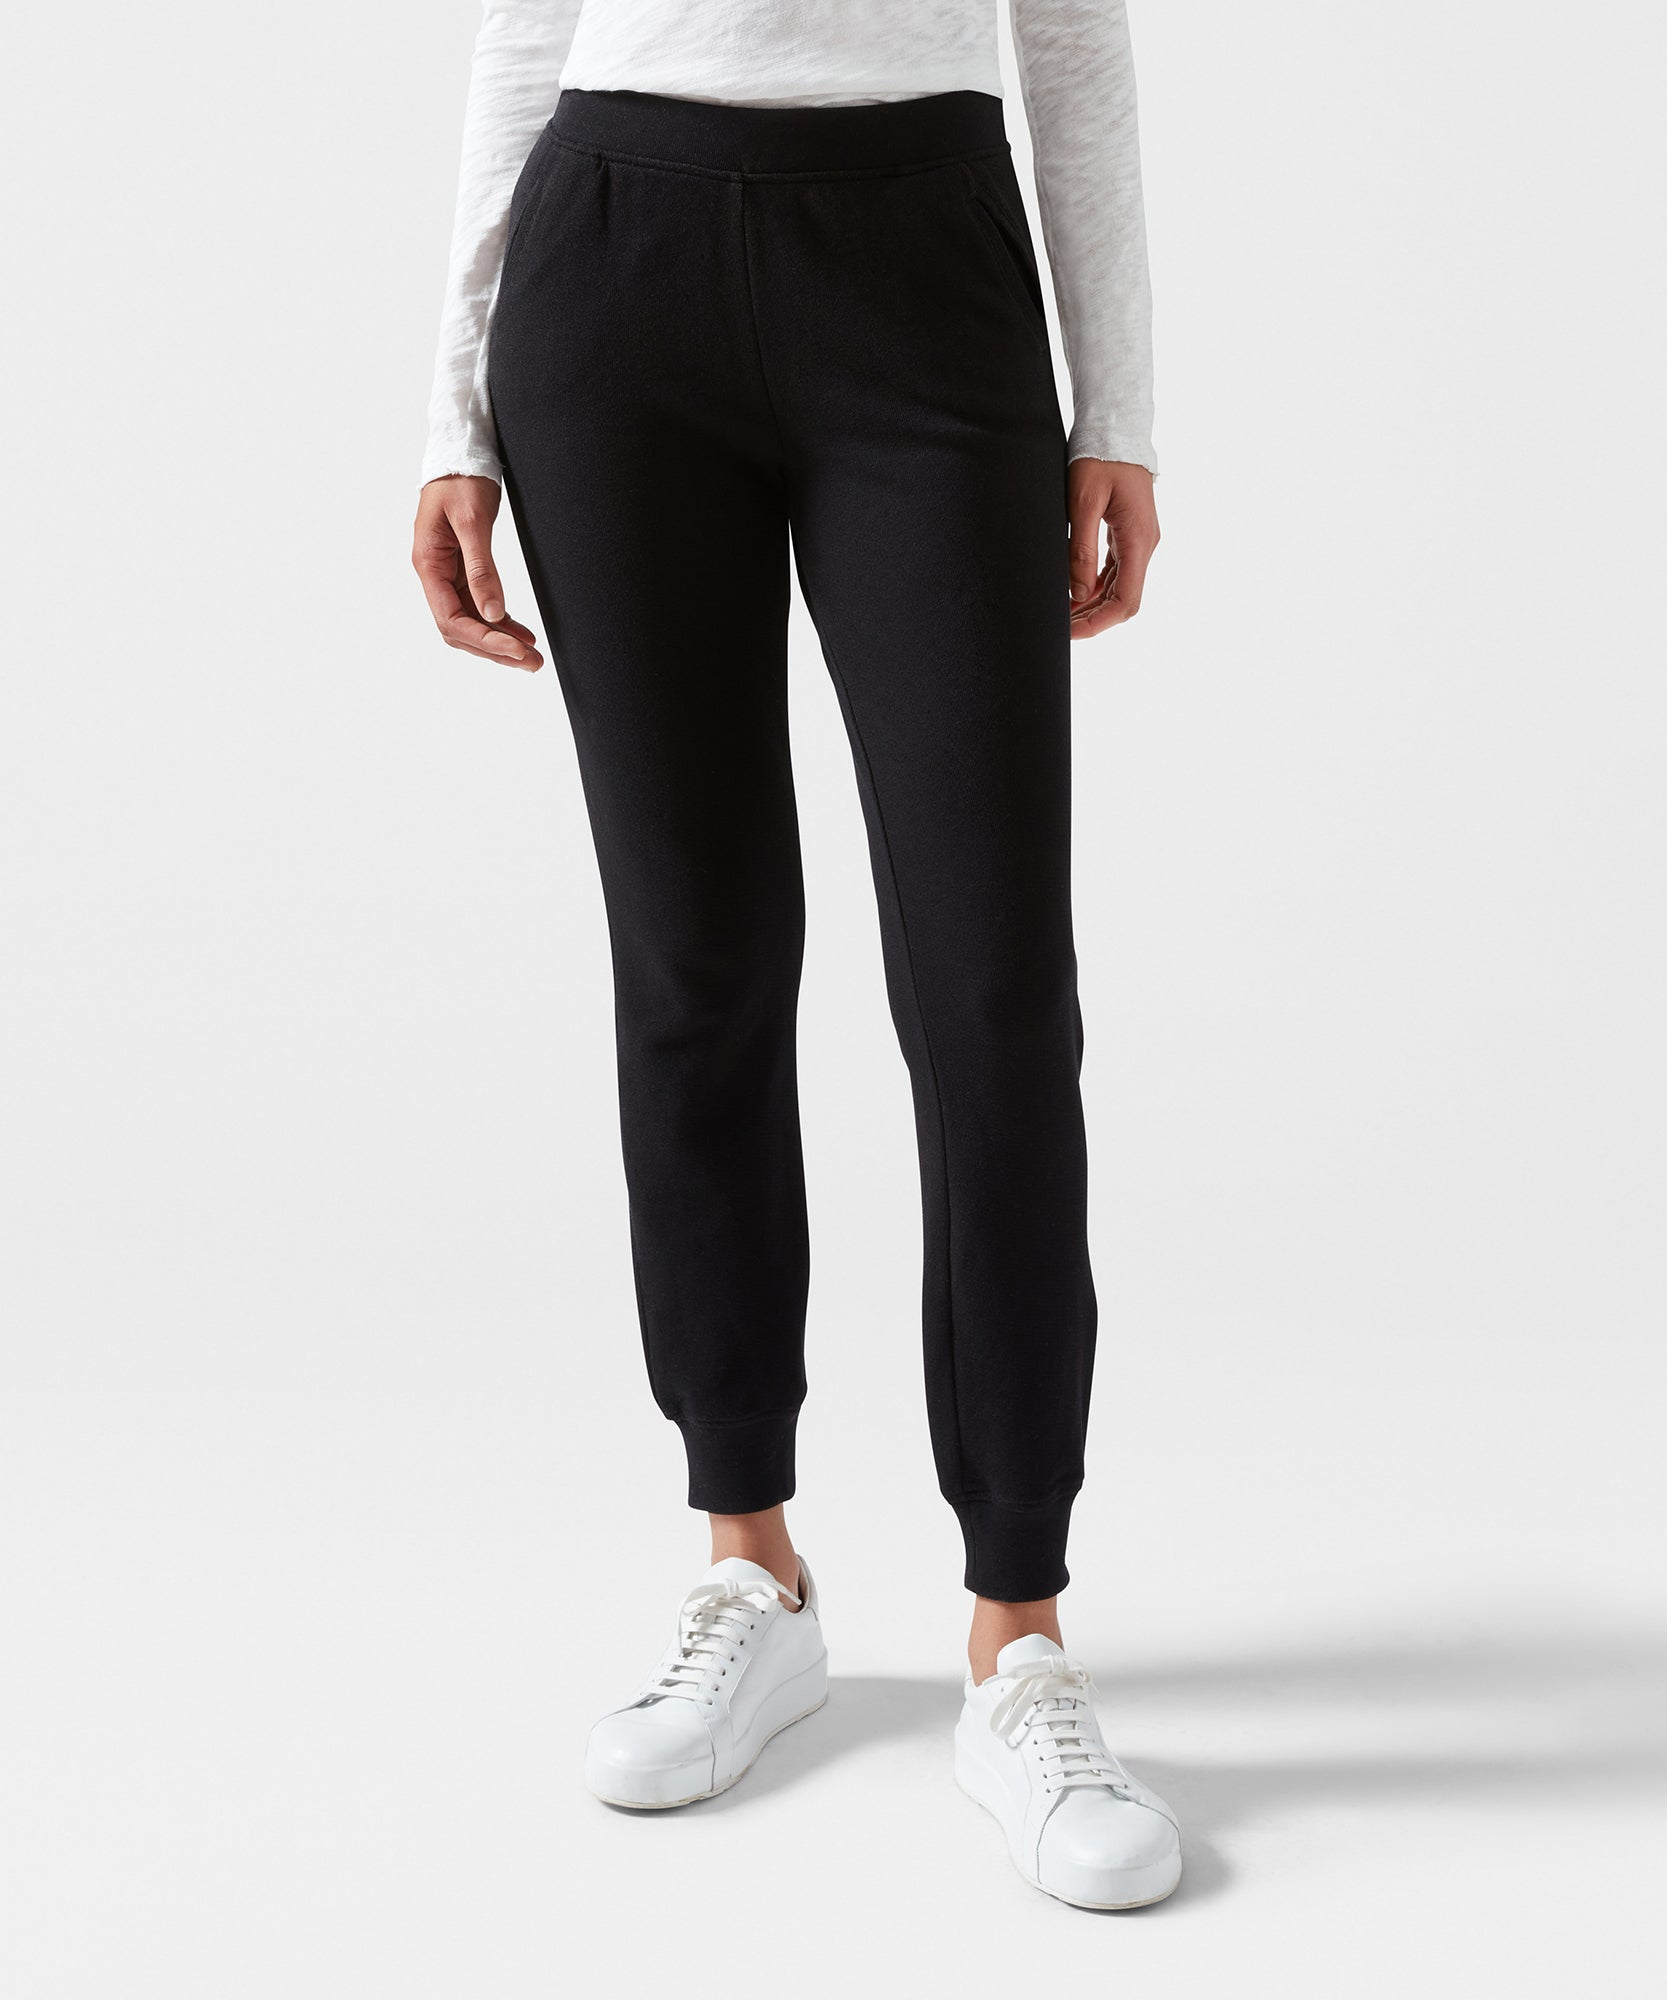 Black French Terry Sweatpants - Women's Luxe Loungewear by ATM Anthony Thomas Melillo